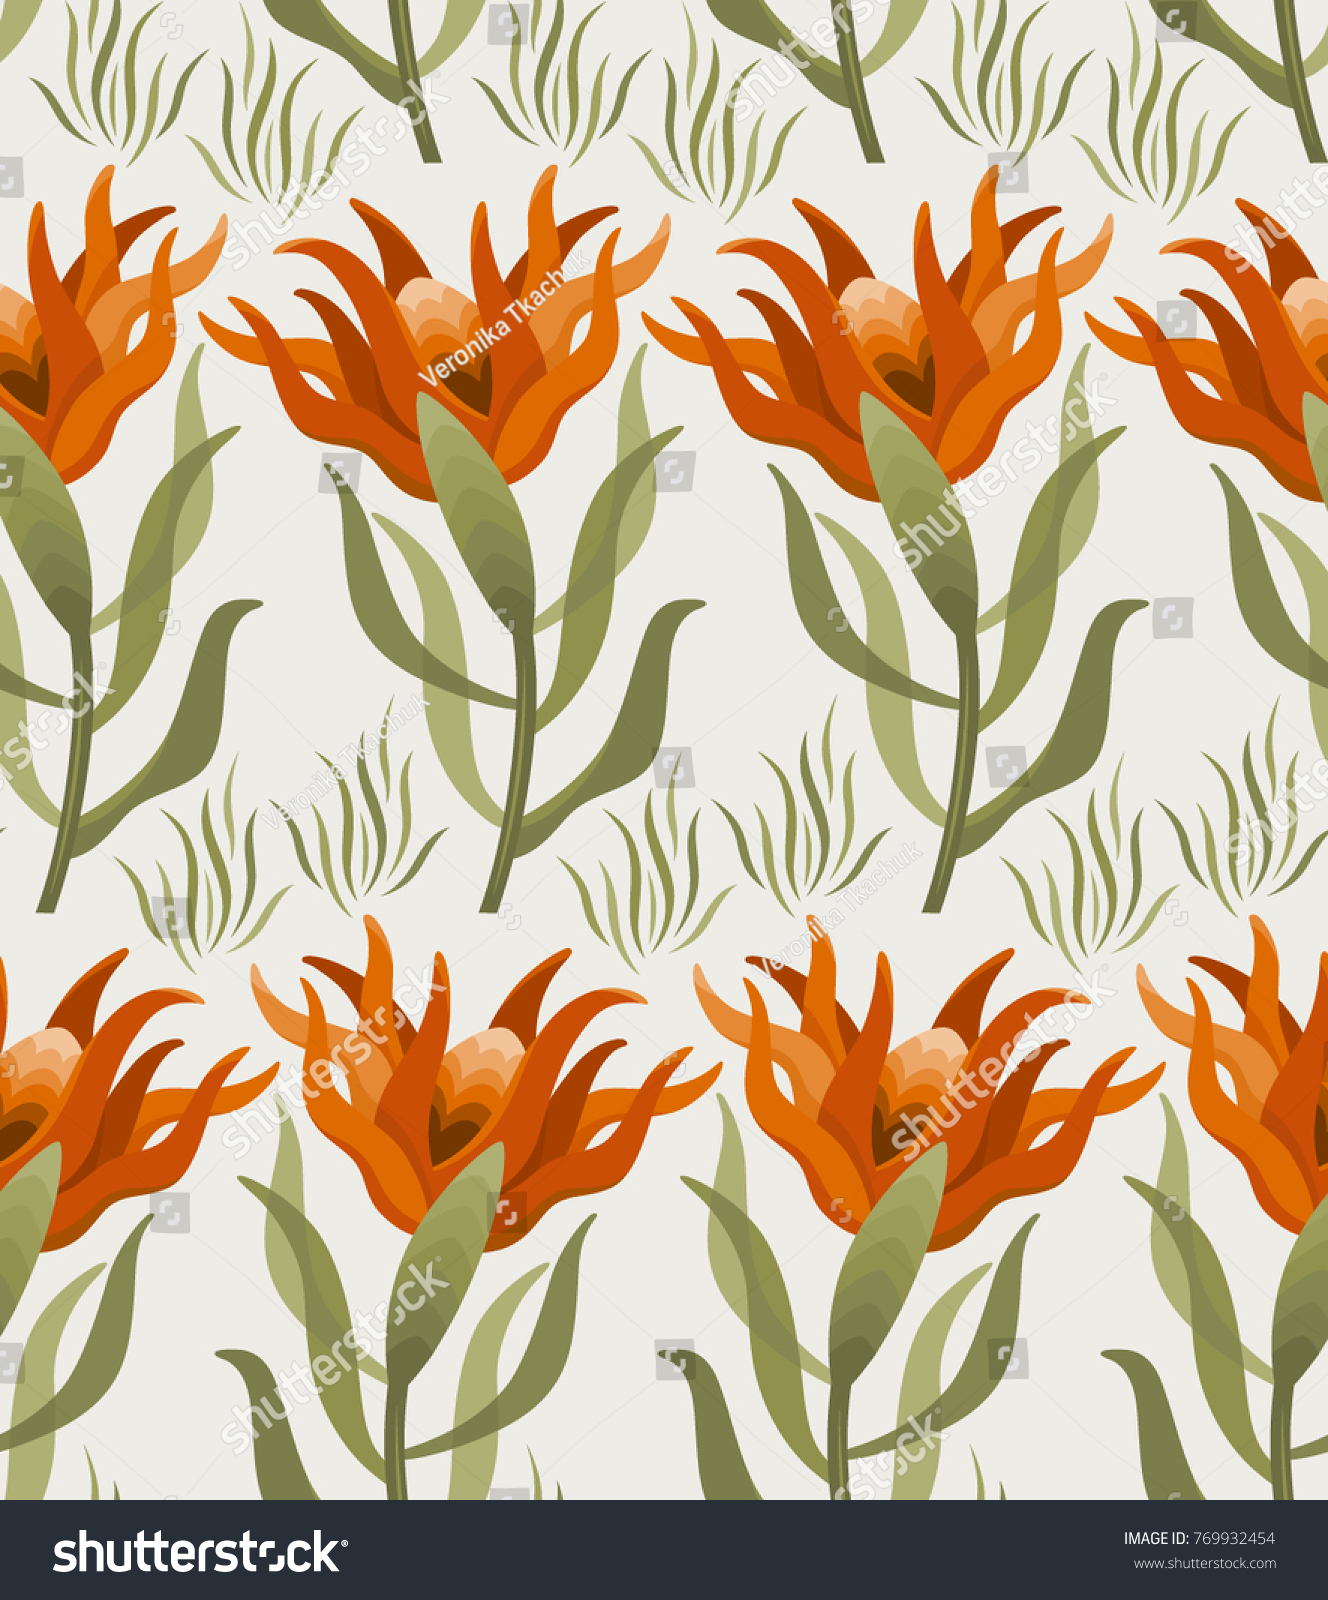 Abstract Floral Seamless Background Exotic Orange Flowers Hand Drawn Vector Illustration